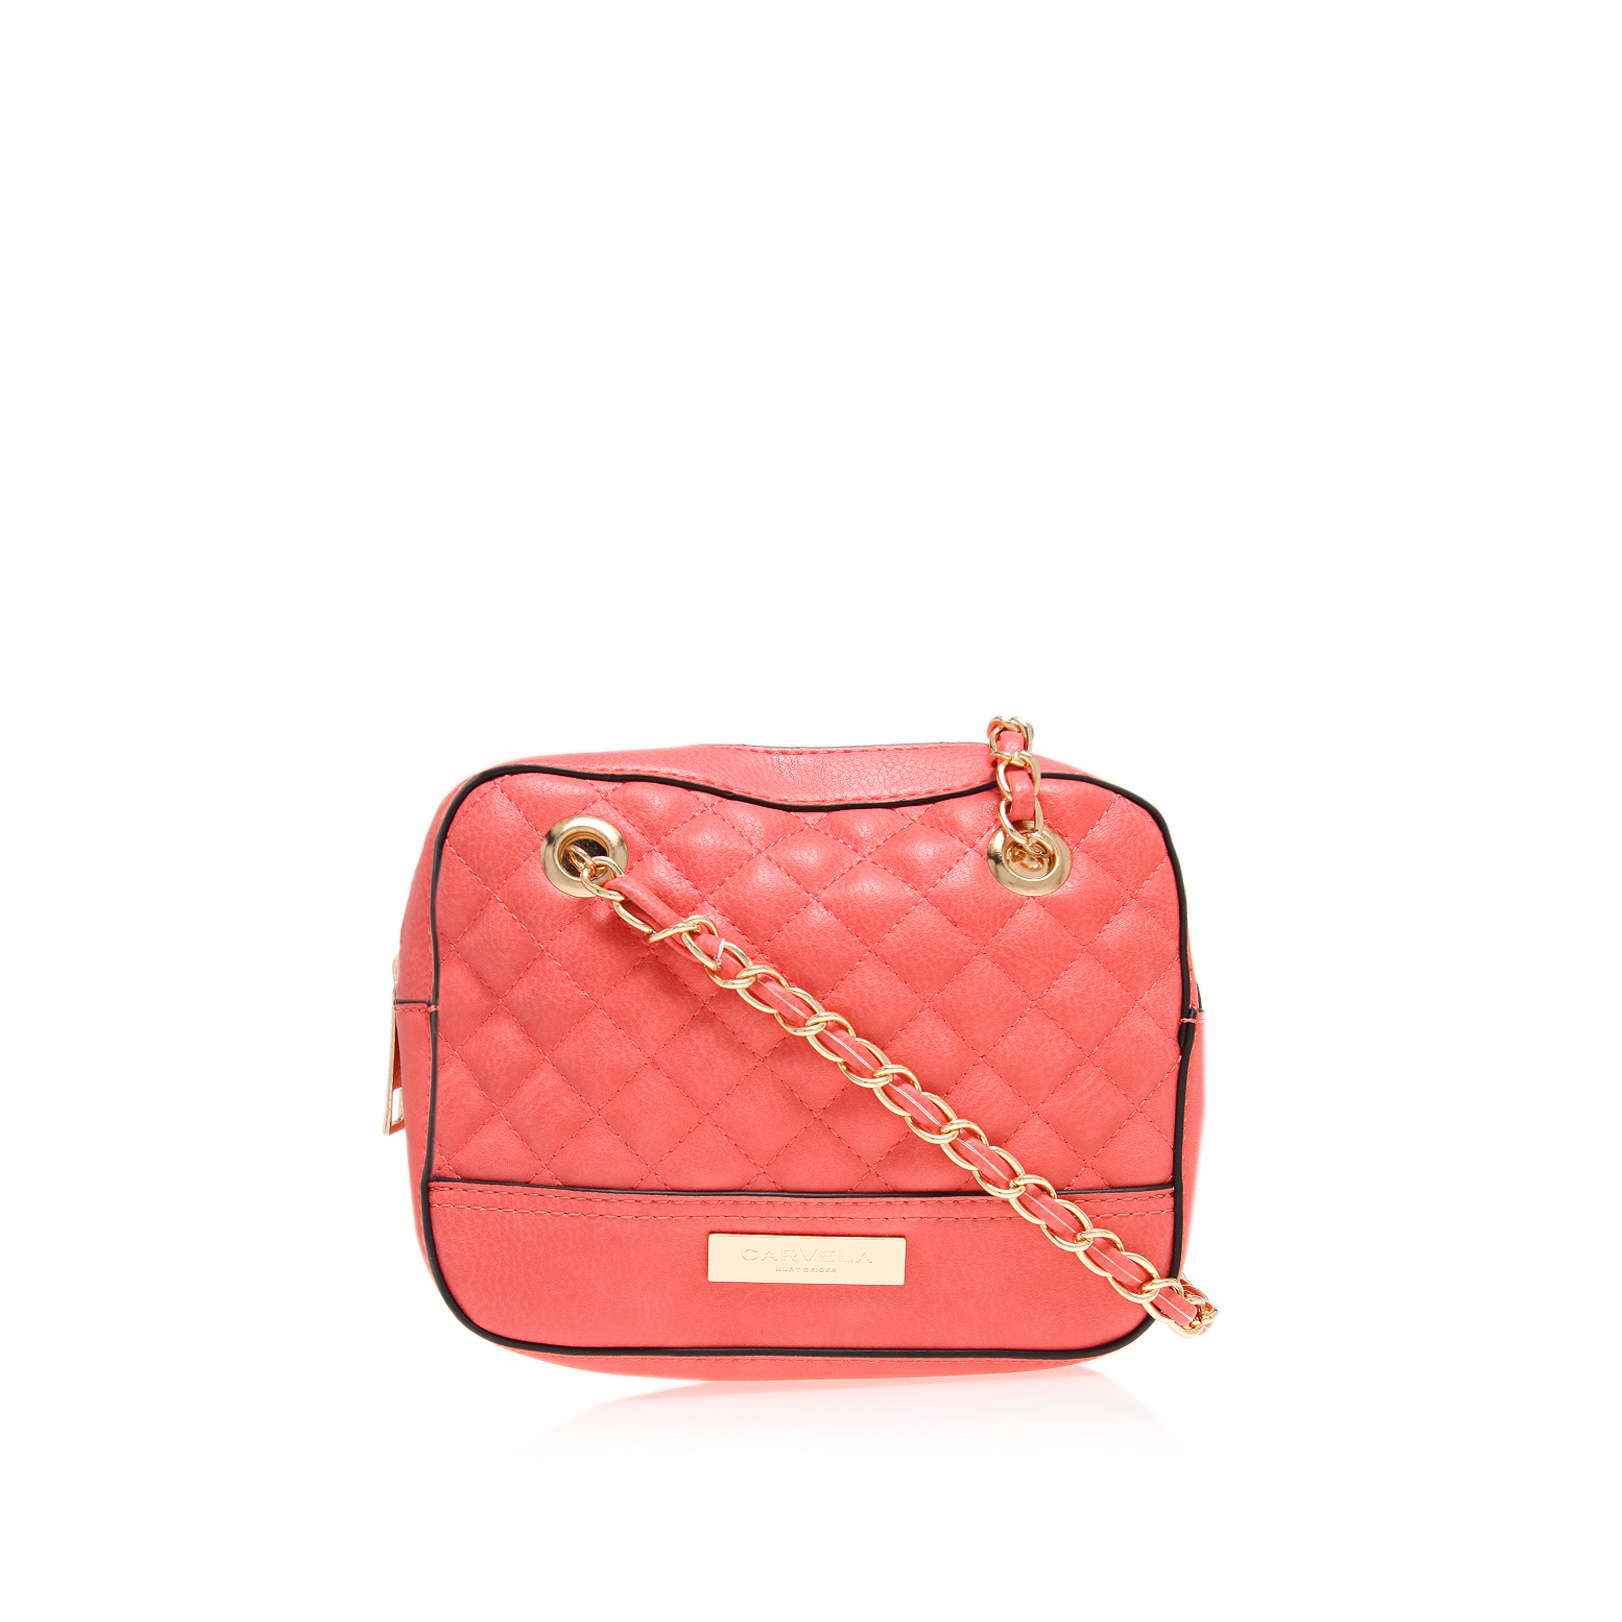 DEBY XBODY QUILTED CHAIN